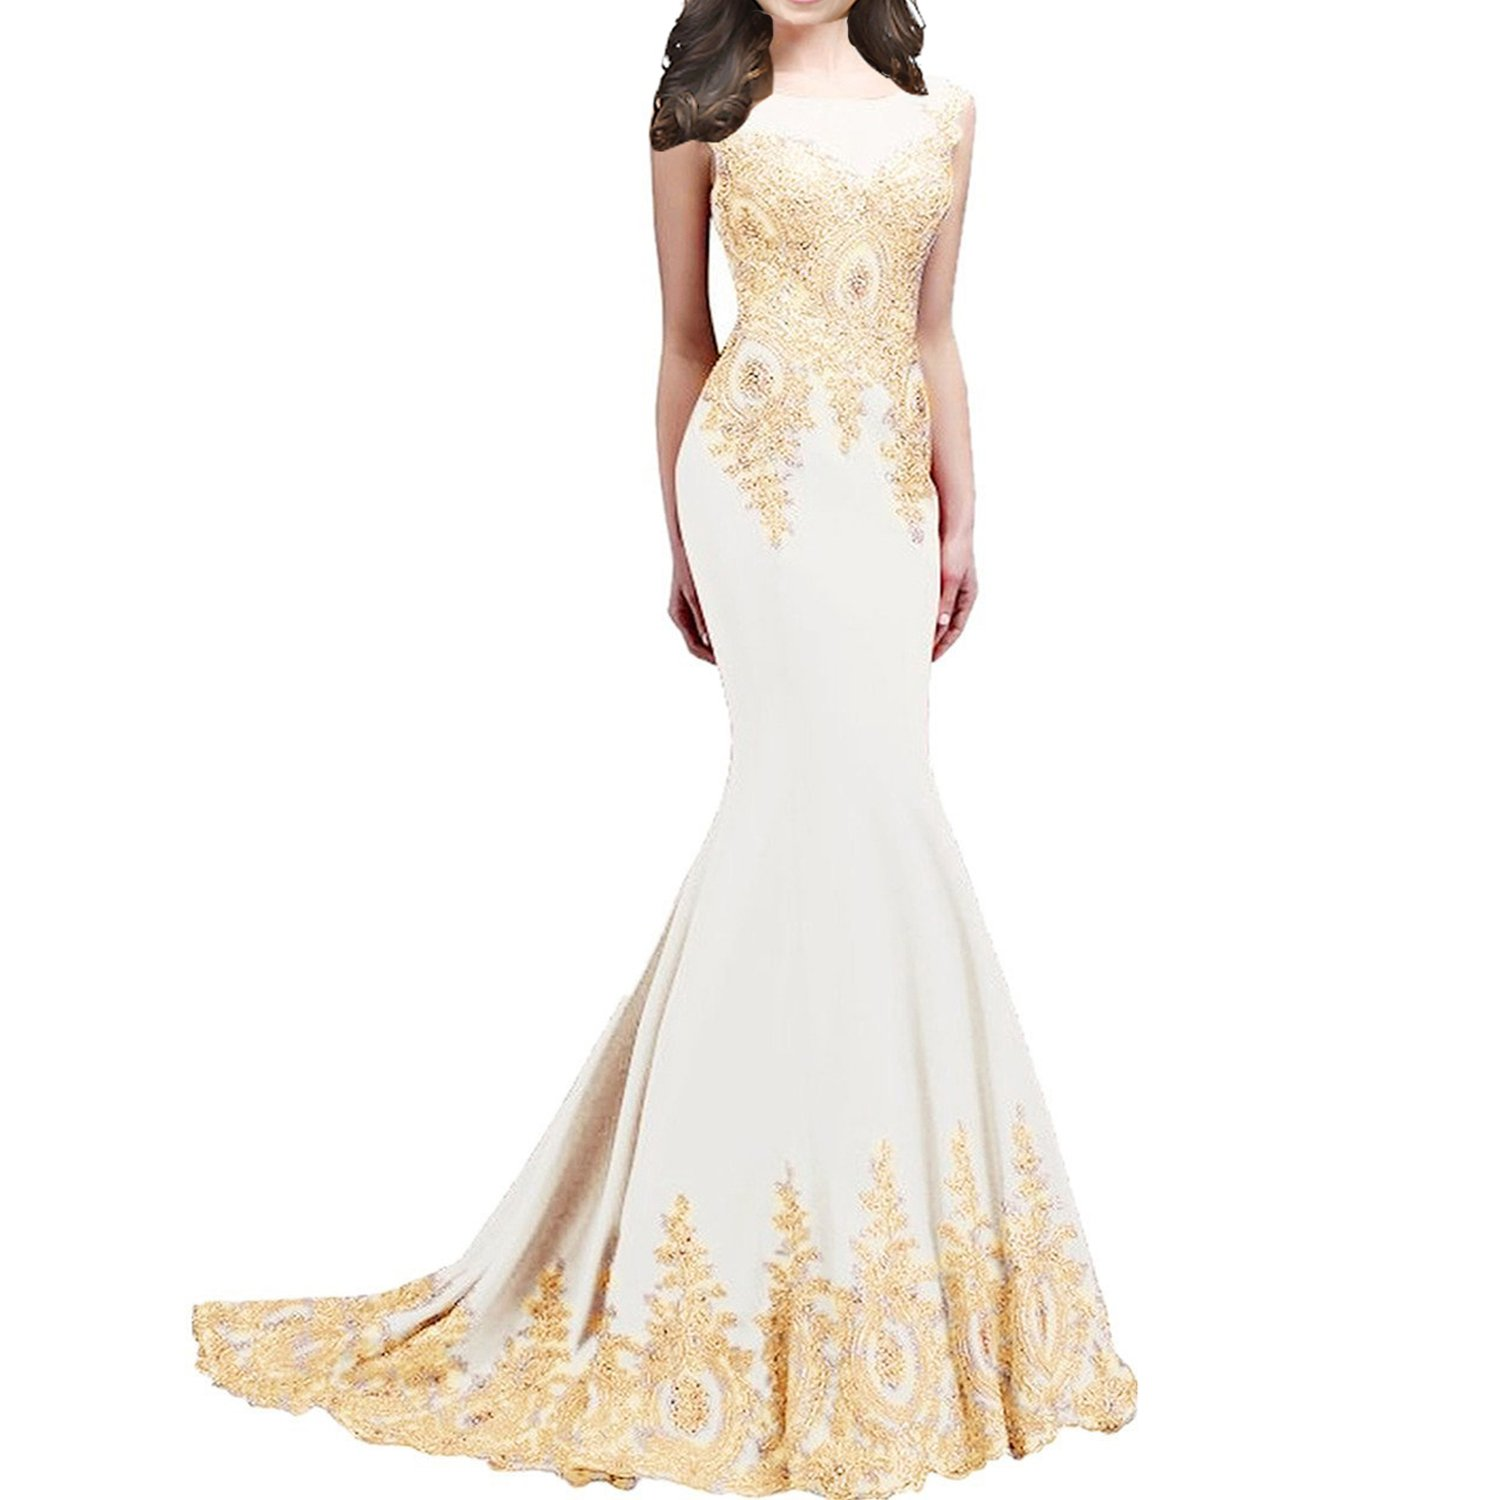 Sleeveless Mermaid Long Gold Lace Crystals Beaded Formal Prom Evening Dresses White US 14